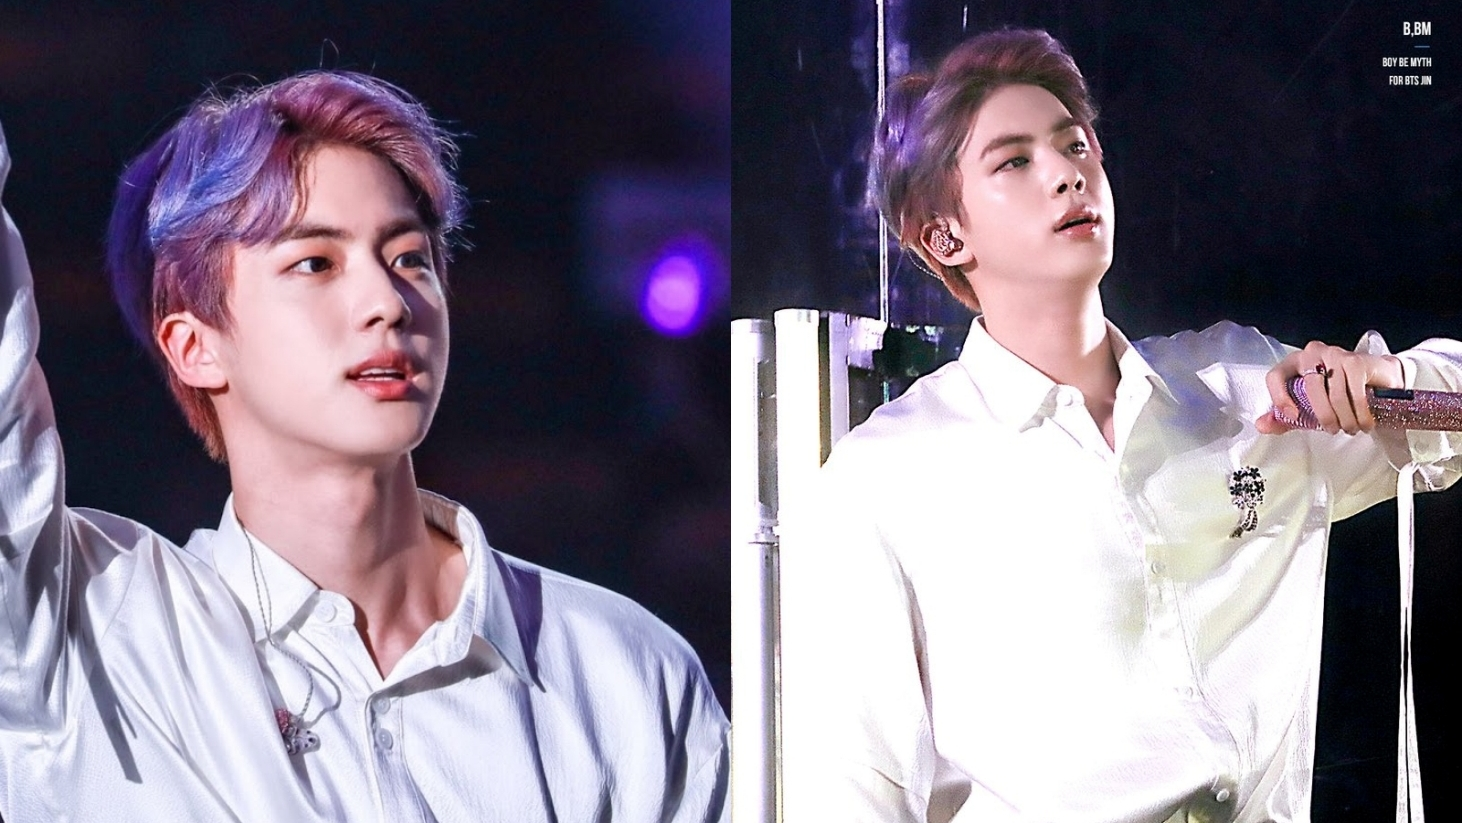 BTS' Jin Openly Talks About The Contract With Agency at 'Bang Bang Con The Live' Concert